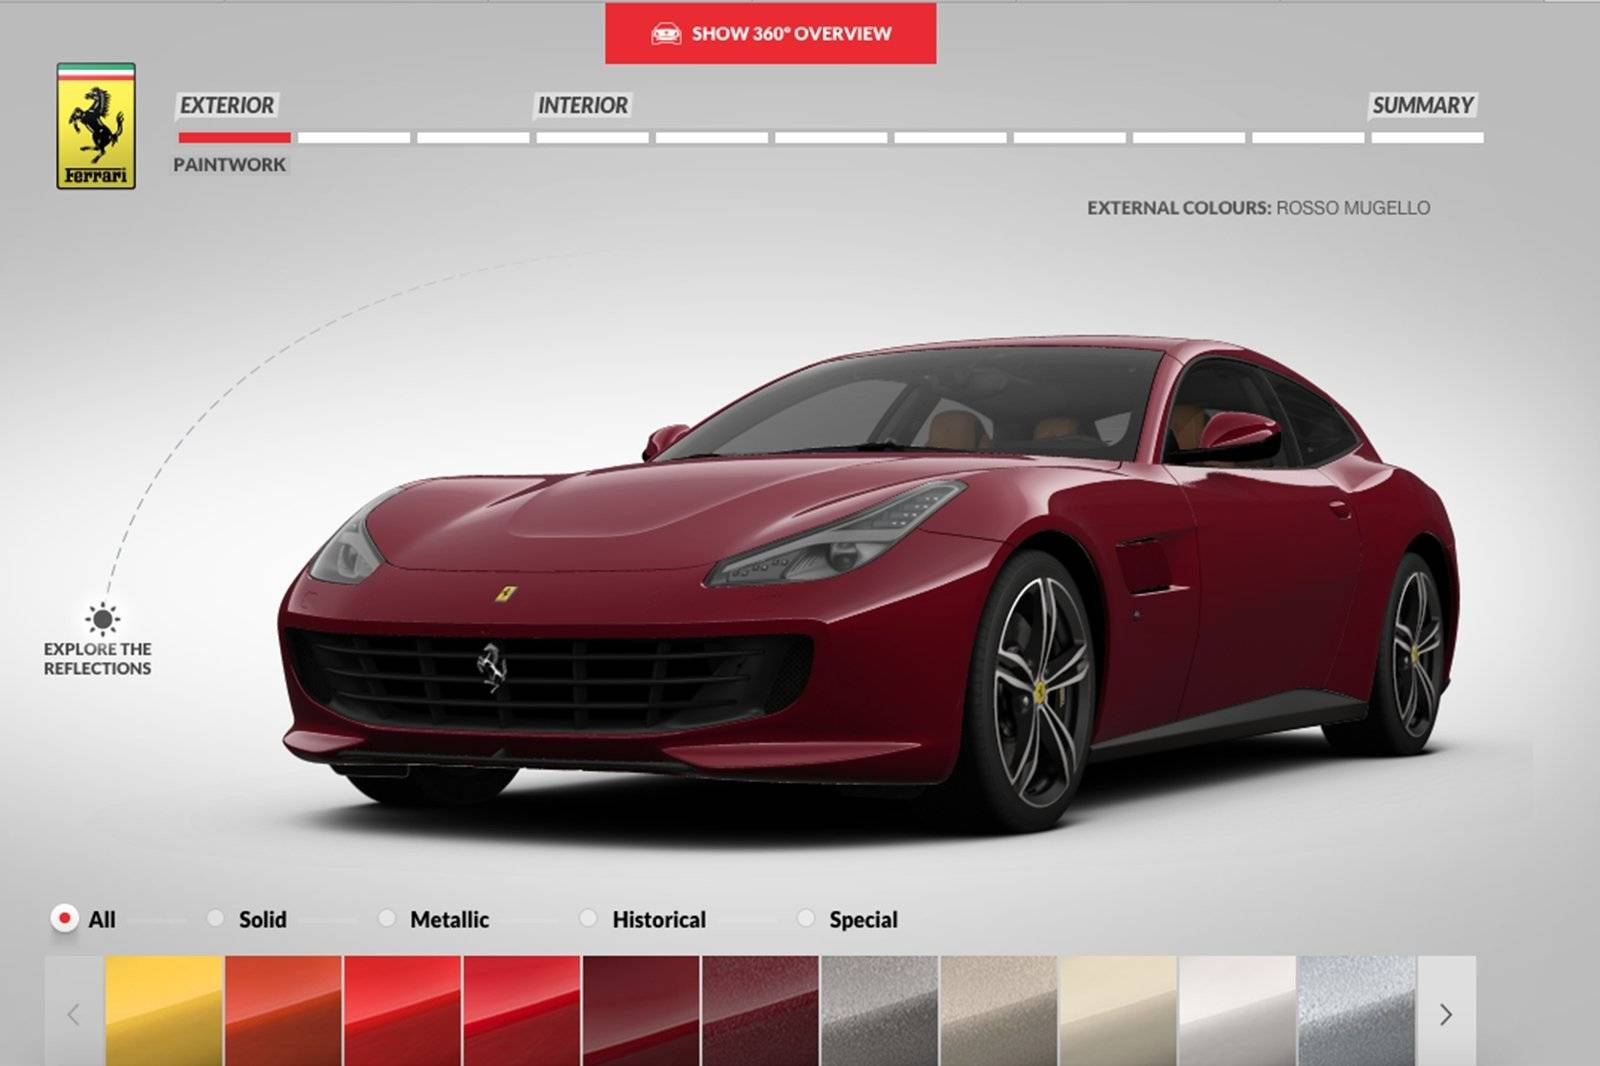 gtc4lusso is duurste ferrari te koop autonieuws. Black Bedroom Furniture Sets. Home Design Ideas